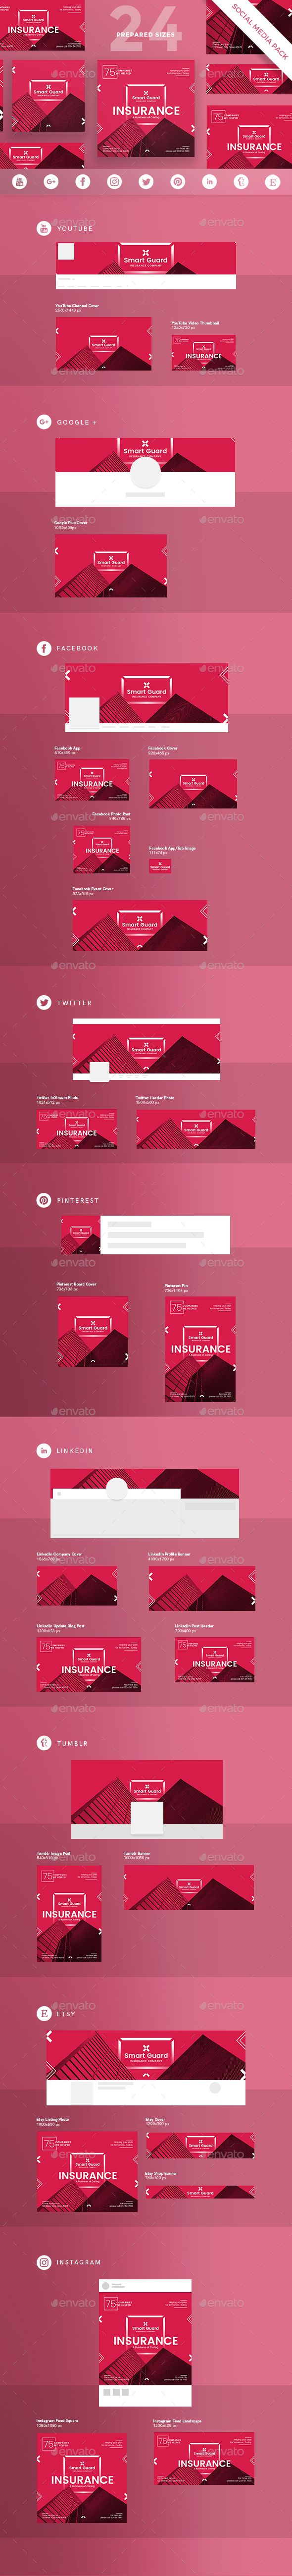 Insurance Company Social Media Pack A beautiful multipurpose Social Media Pack for designers, entrepreneurs, creators and businesses to inform and promote themselves through platforms like Twitter, Facebook, Instagram, Youtube, LinkedIn and more.